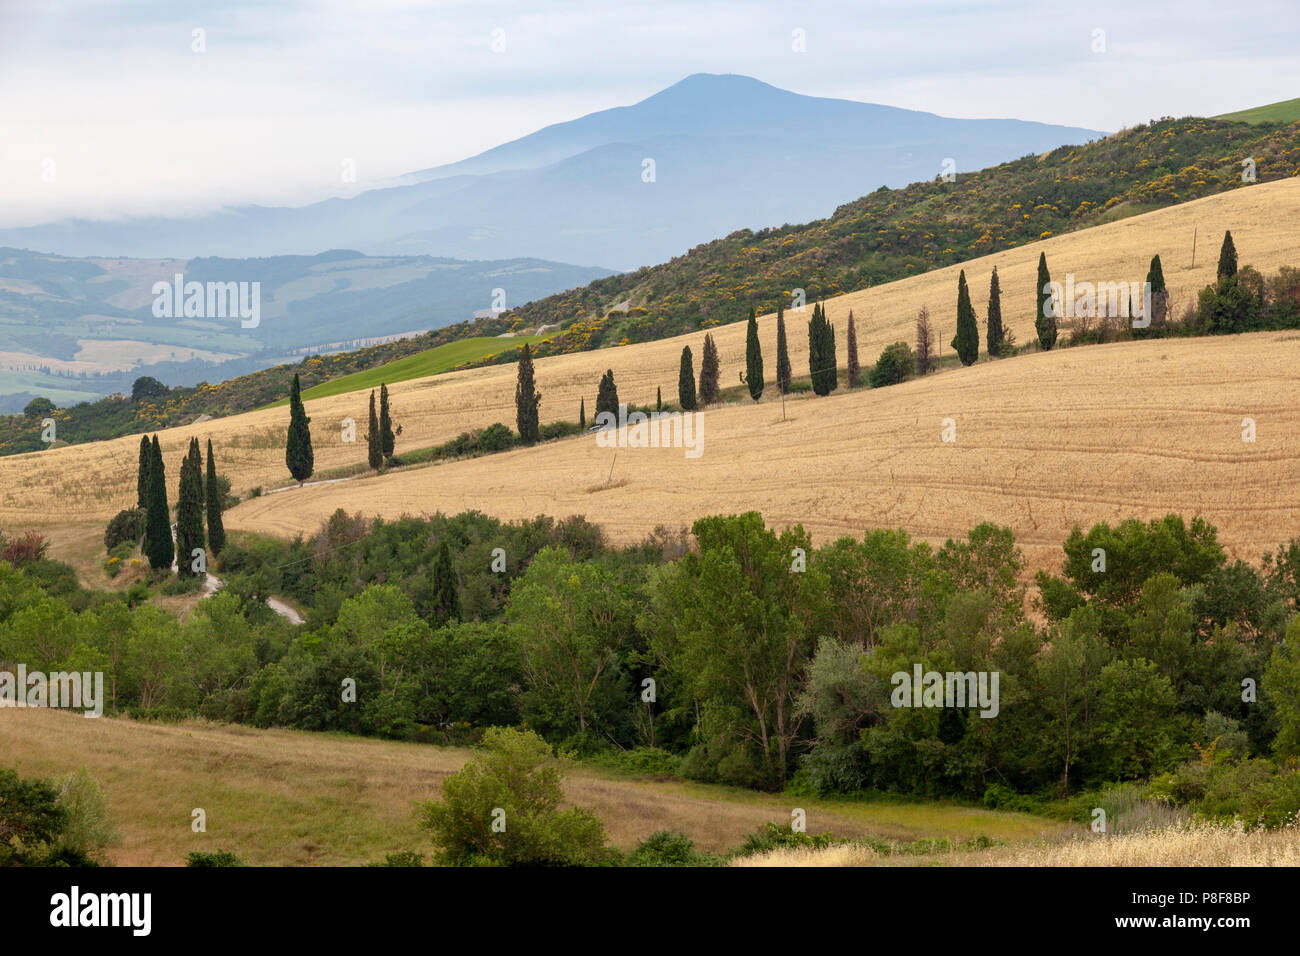 In the vicinity of Montepulciano, a cypress alignment along a lane with Mount Amiata in the background (Tuscany). Aux environs de Montepulciano. - Stock Image